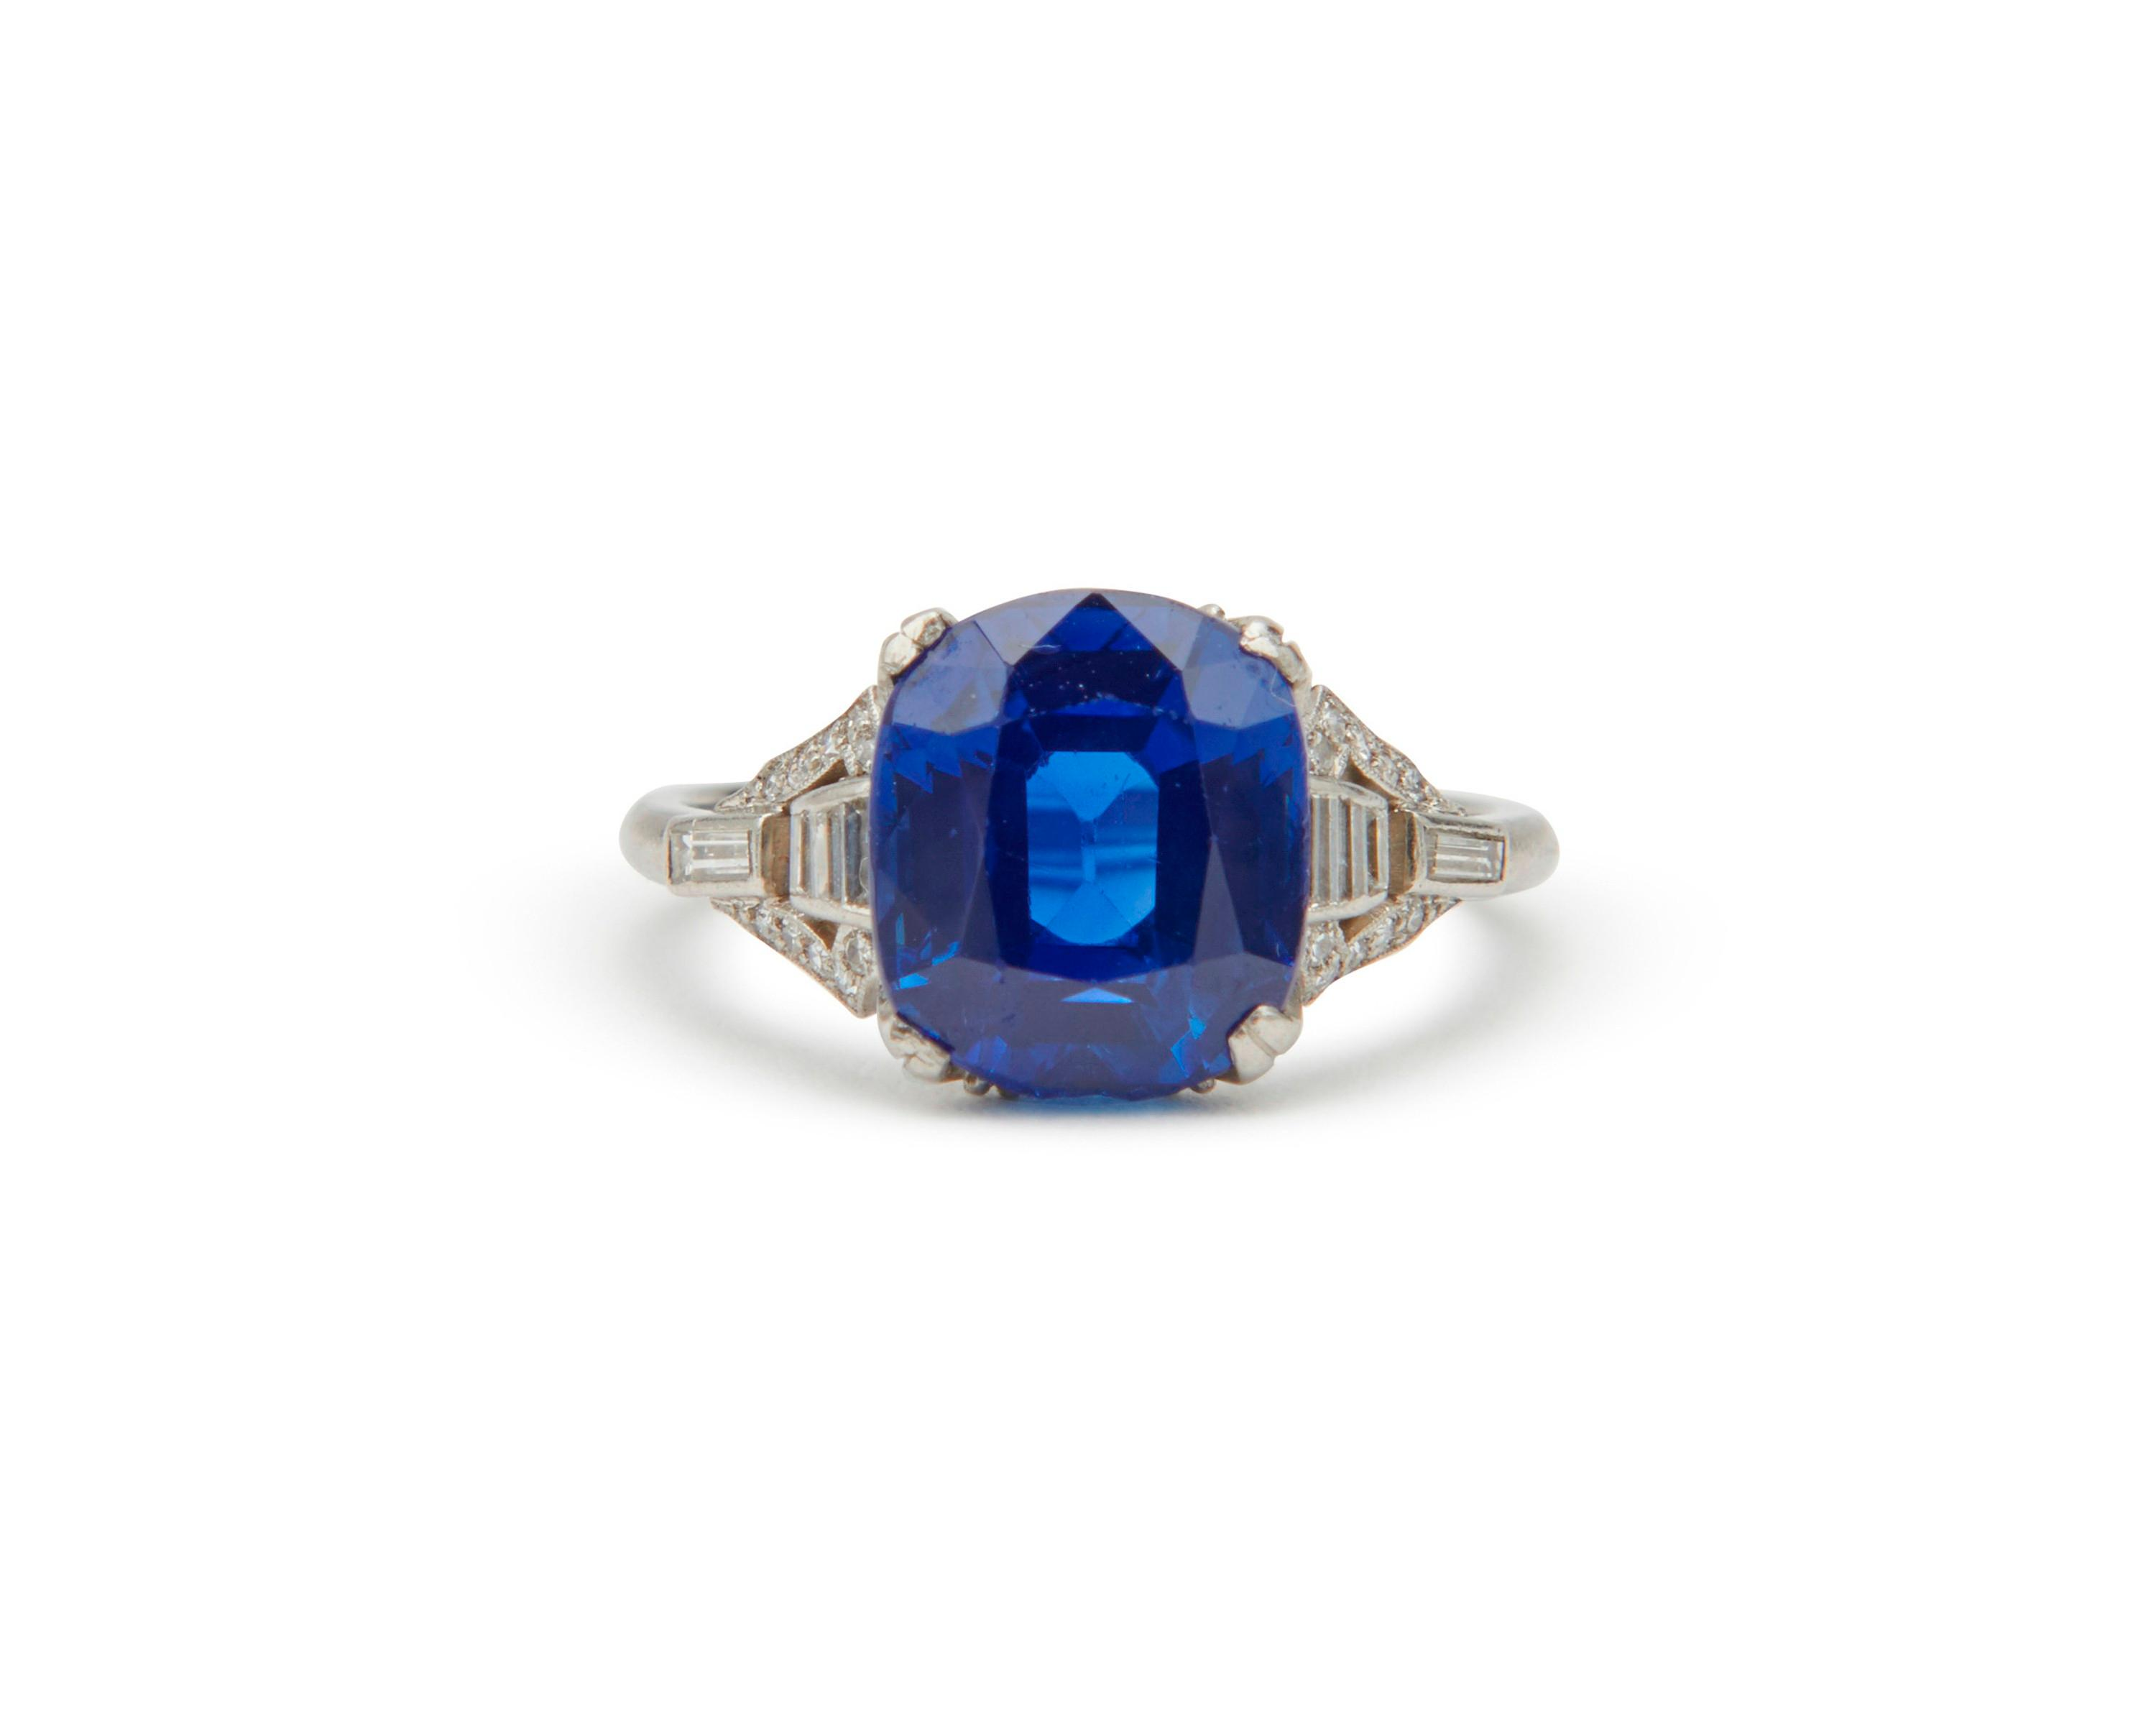 MARCUS & CO. Platinum, Kashmir Sapphire, and Diamond Ring